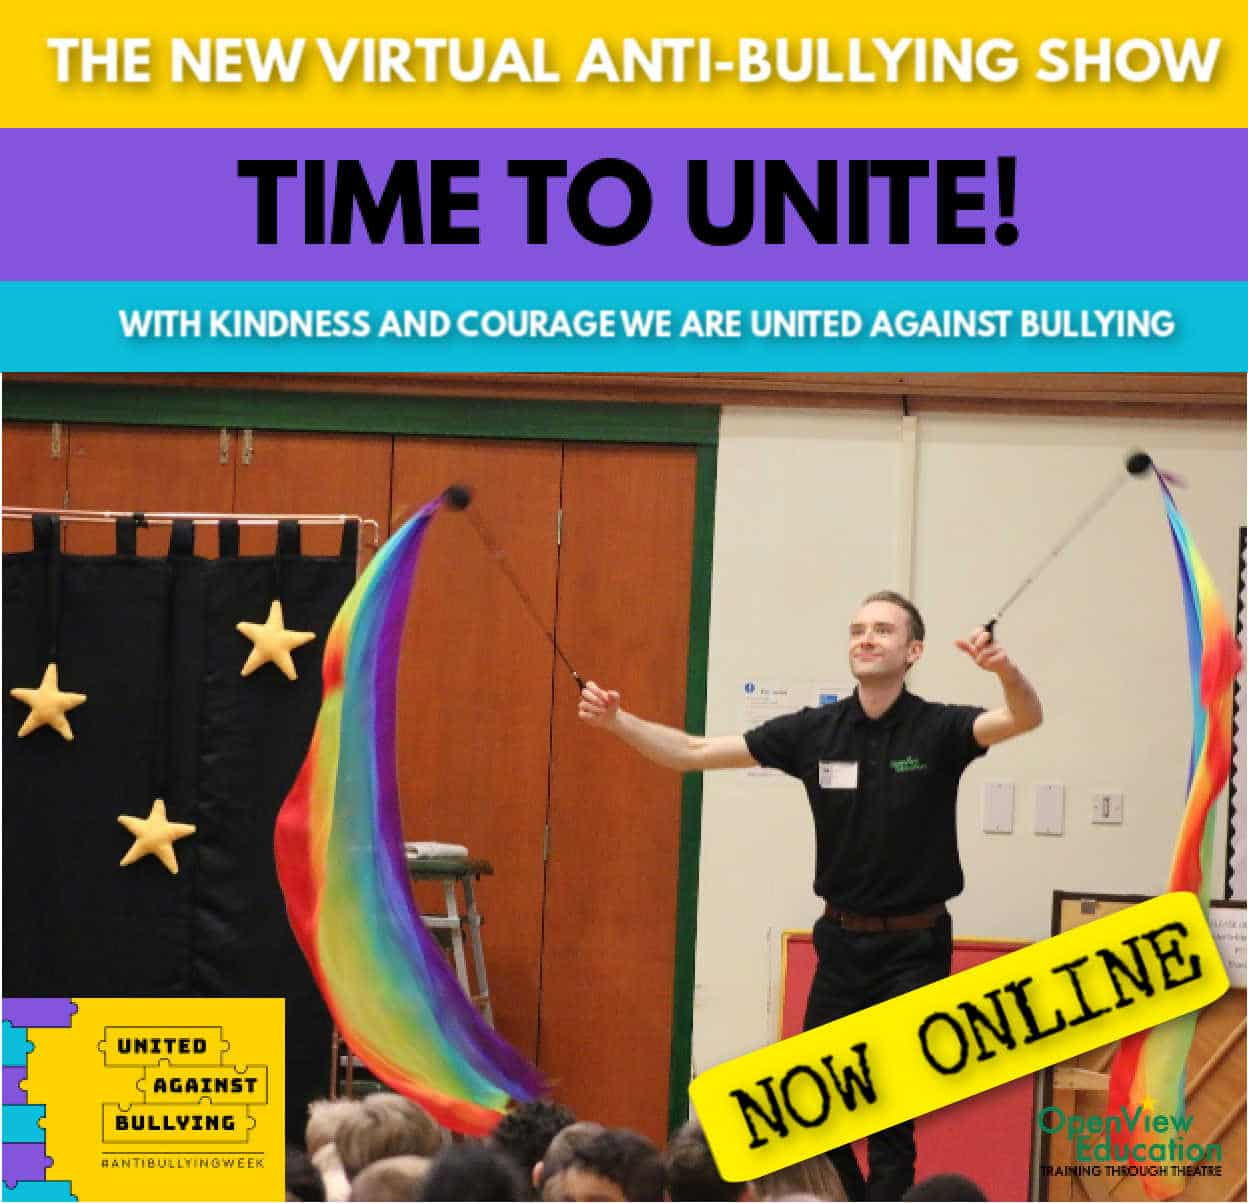 Anti-Bullying Online Show